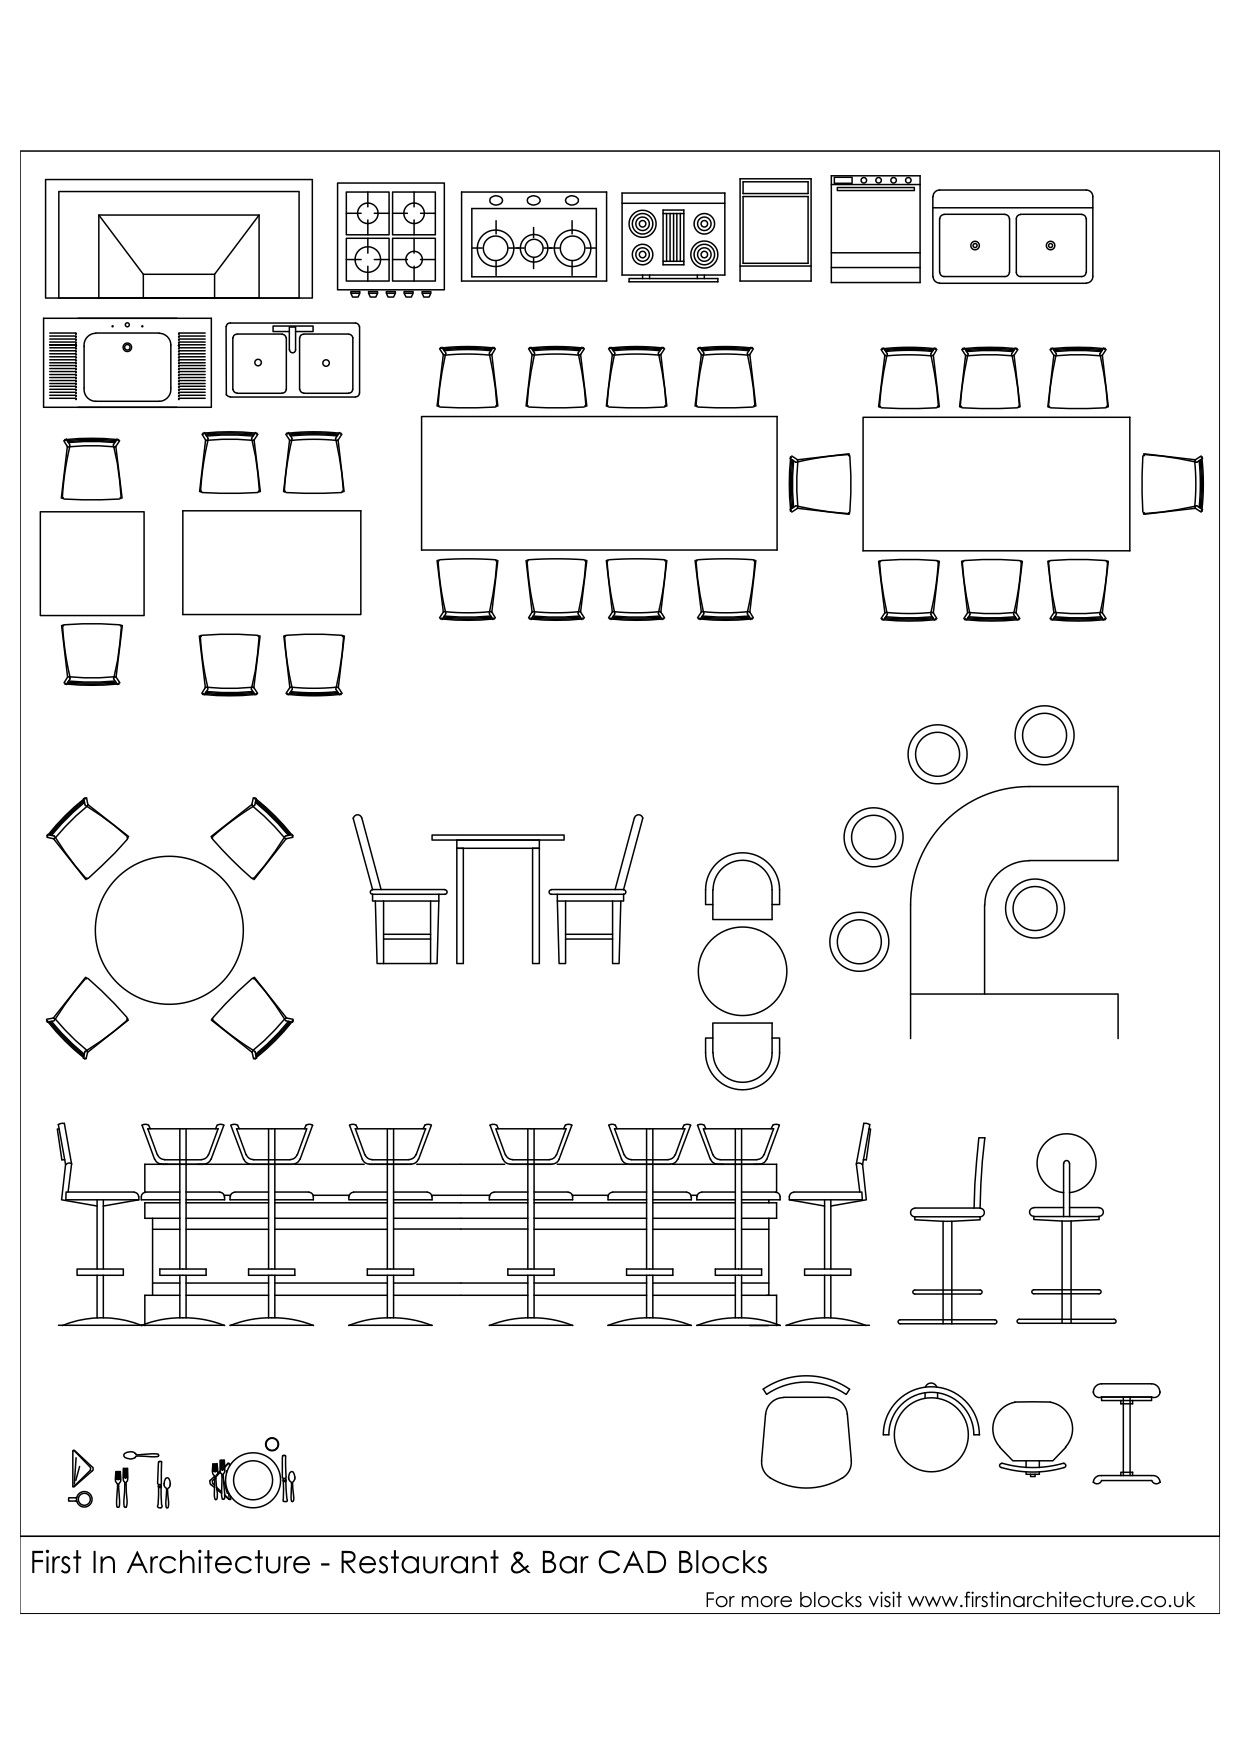 hight resolution of here is another set of free cad blocks from the first in architecture cad block database we hope you find them useful please feel